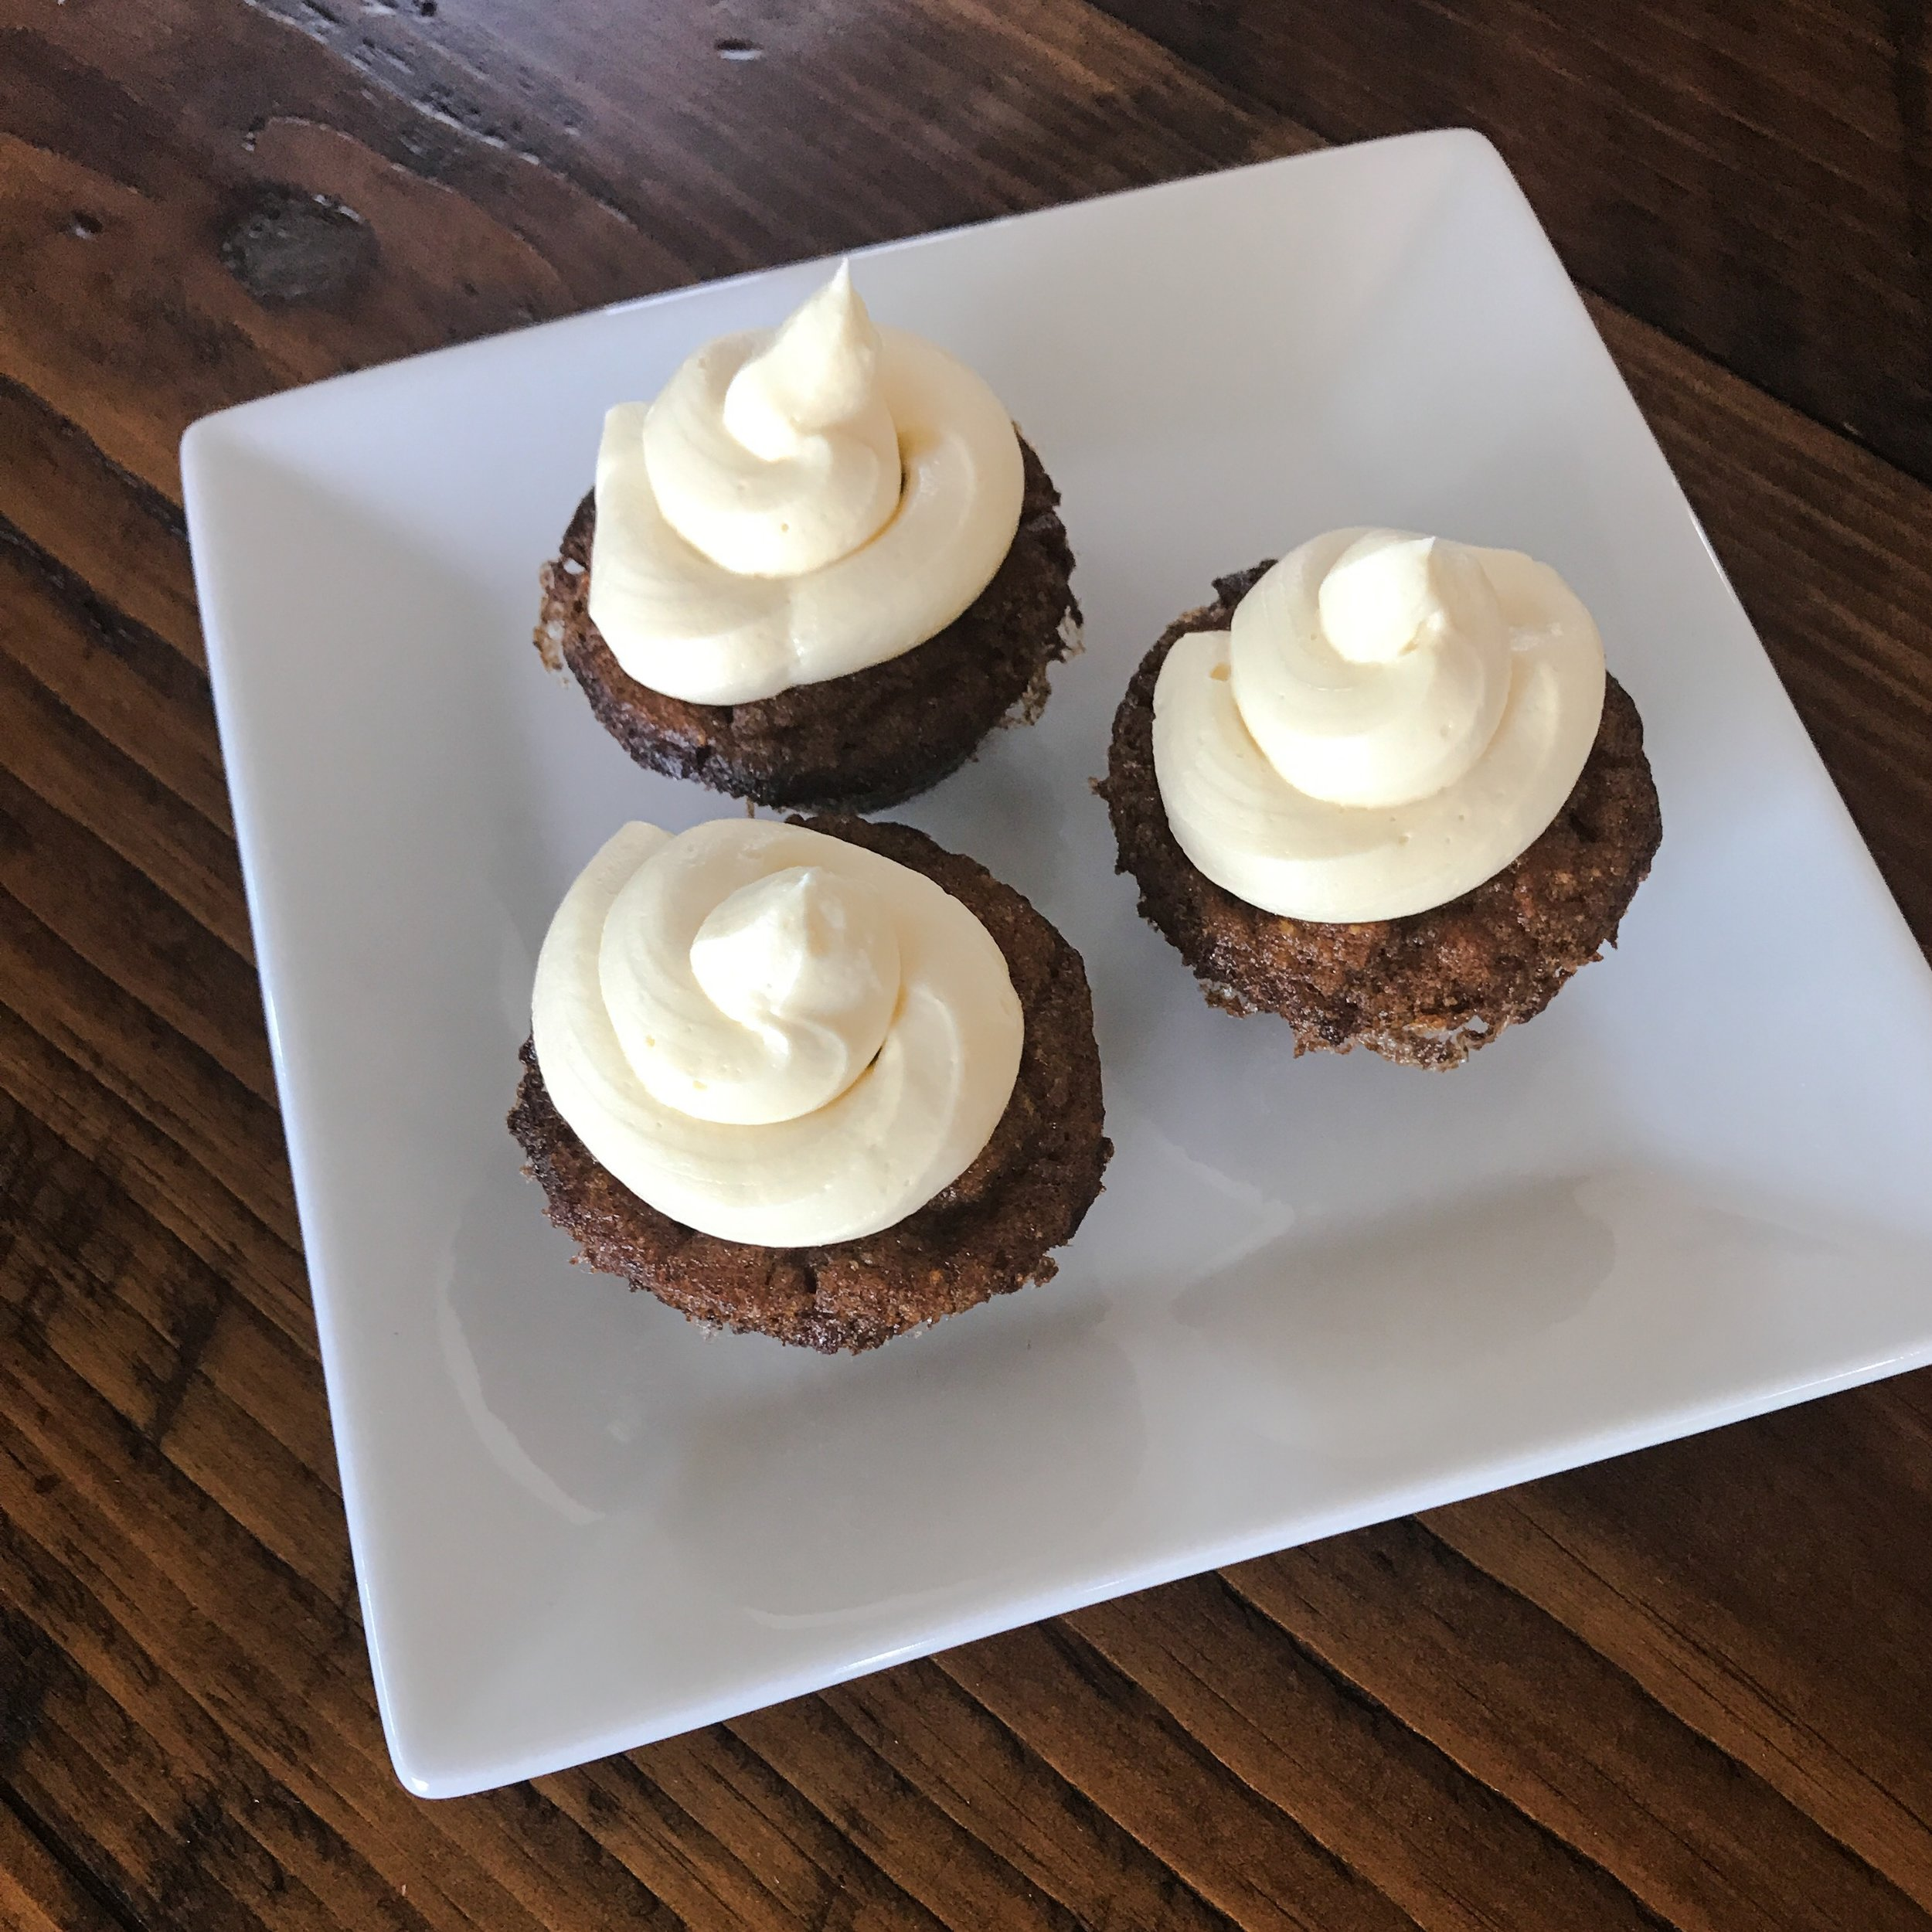 KETO RECIPE: PUMPKIN CUPCAKES WITH BUTTERCREAM FROSTING by Jen Fisch via Keto In The City